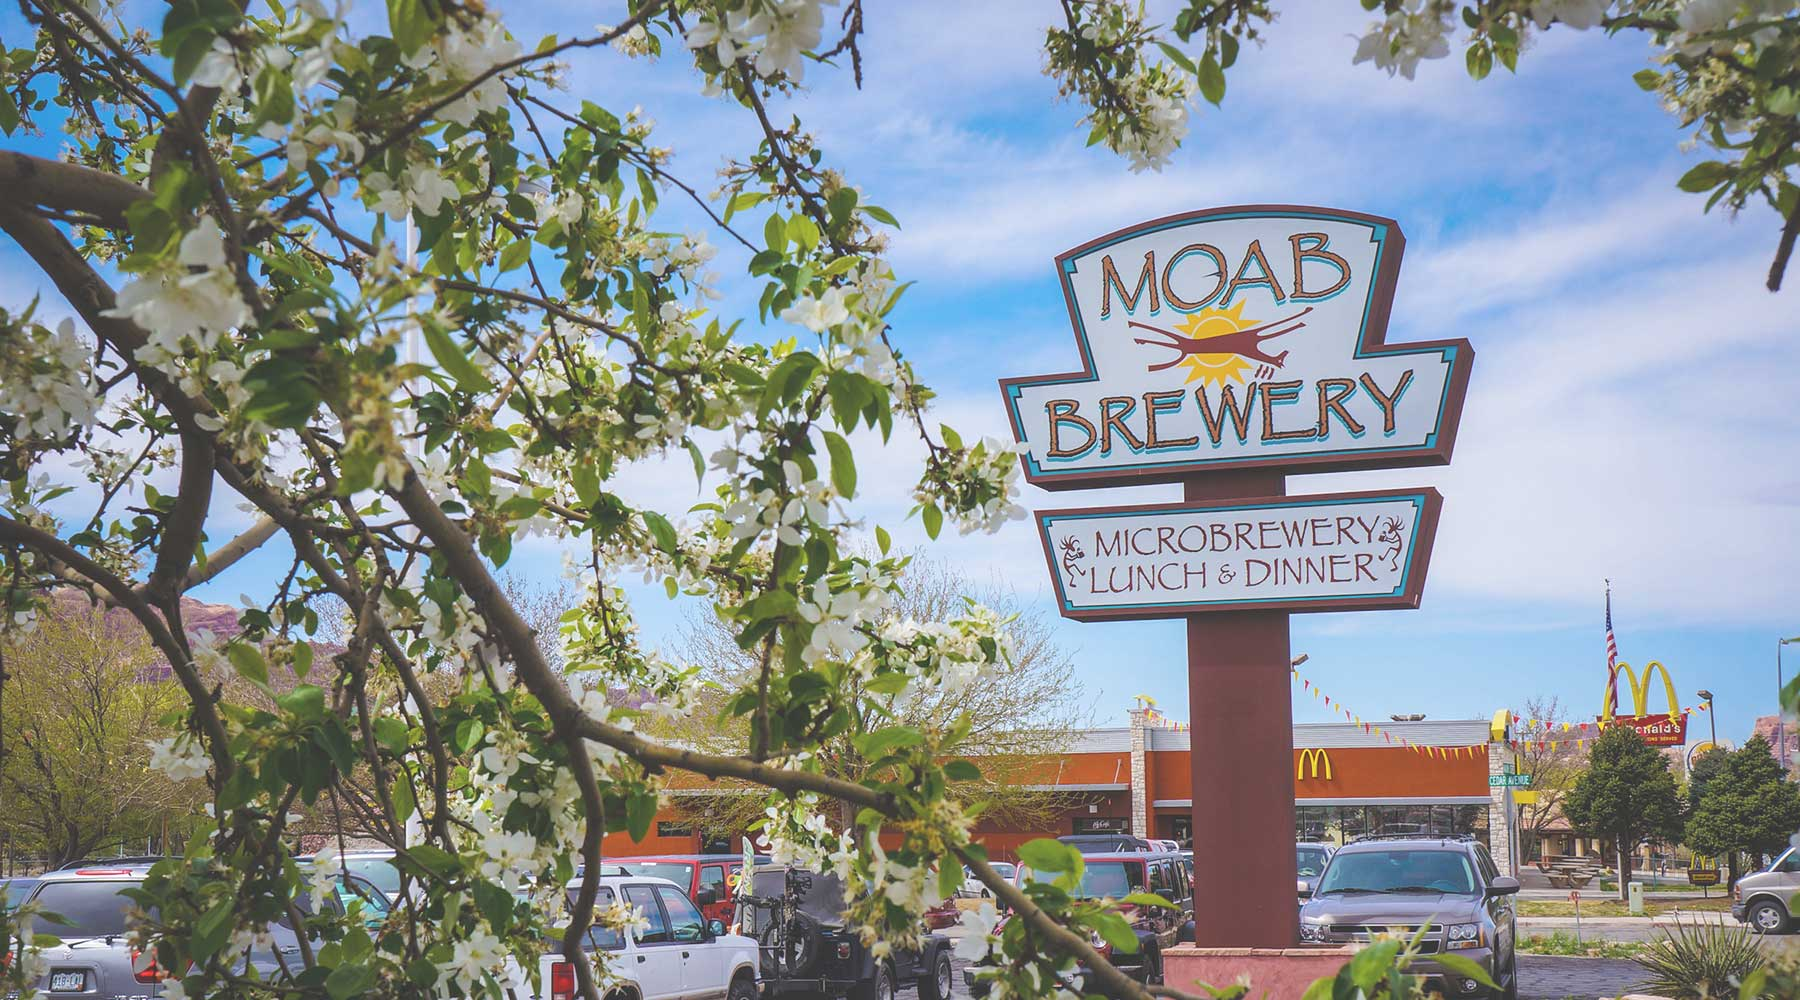 Moab Brewery | Just Wine